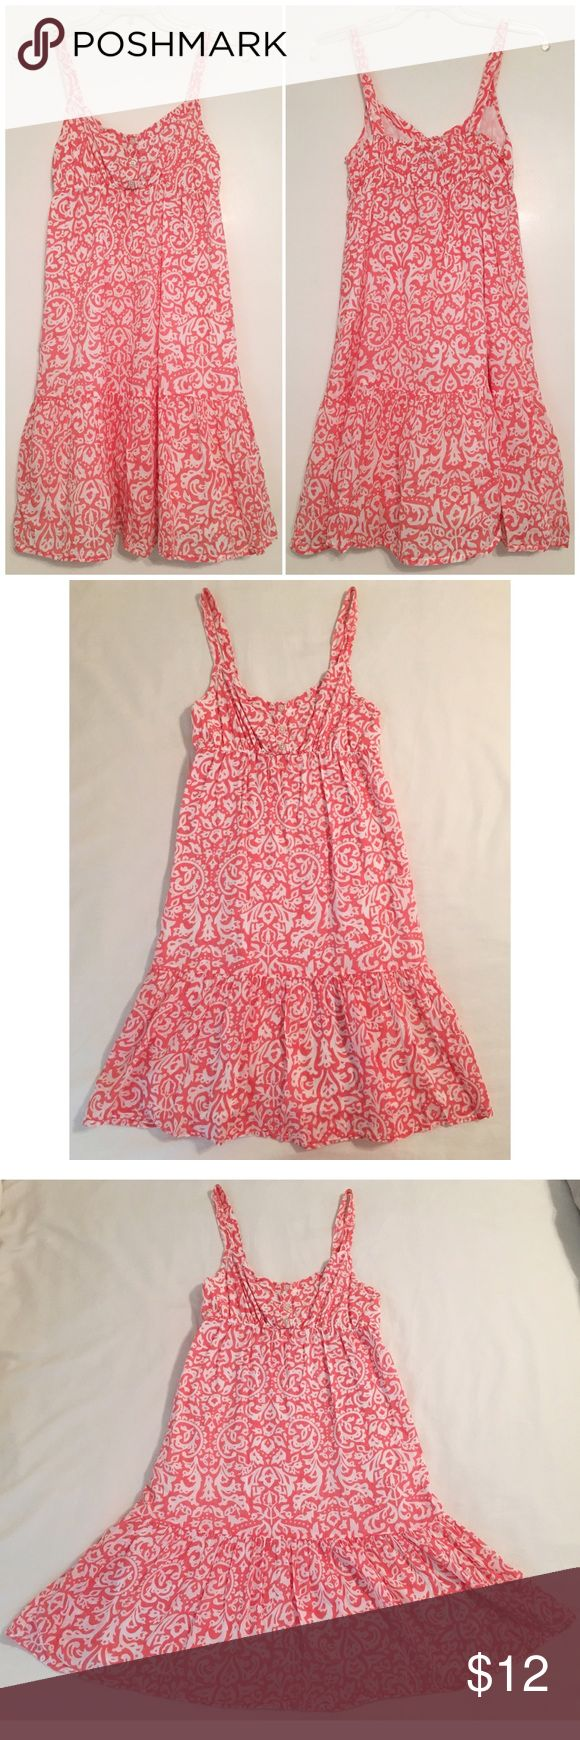 Old Navy Coral Floral Peplum Sundress Old Navy Floral Peplum Sundress Size Extra Small Fully Lined Coral Orange Pink Color Elastic band around the waist Three buttons on the front Flares out at the bottom Worn 3 times Excellent Condition!  Perfect for spring and summer!🌸💛 Old Navy Dresses Mini